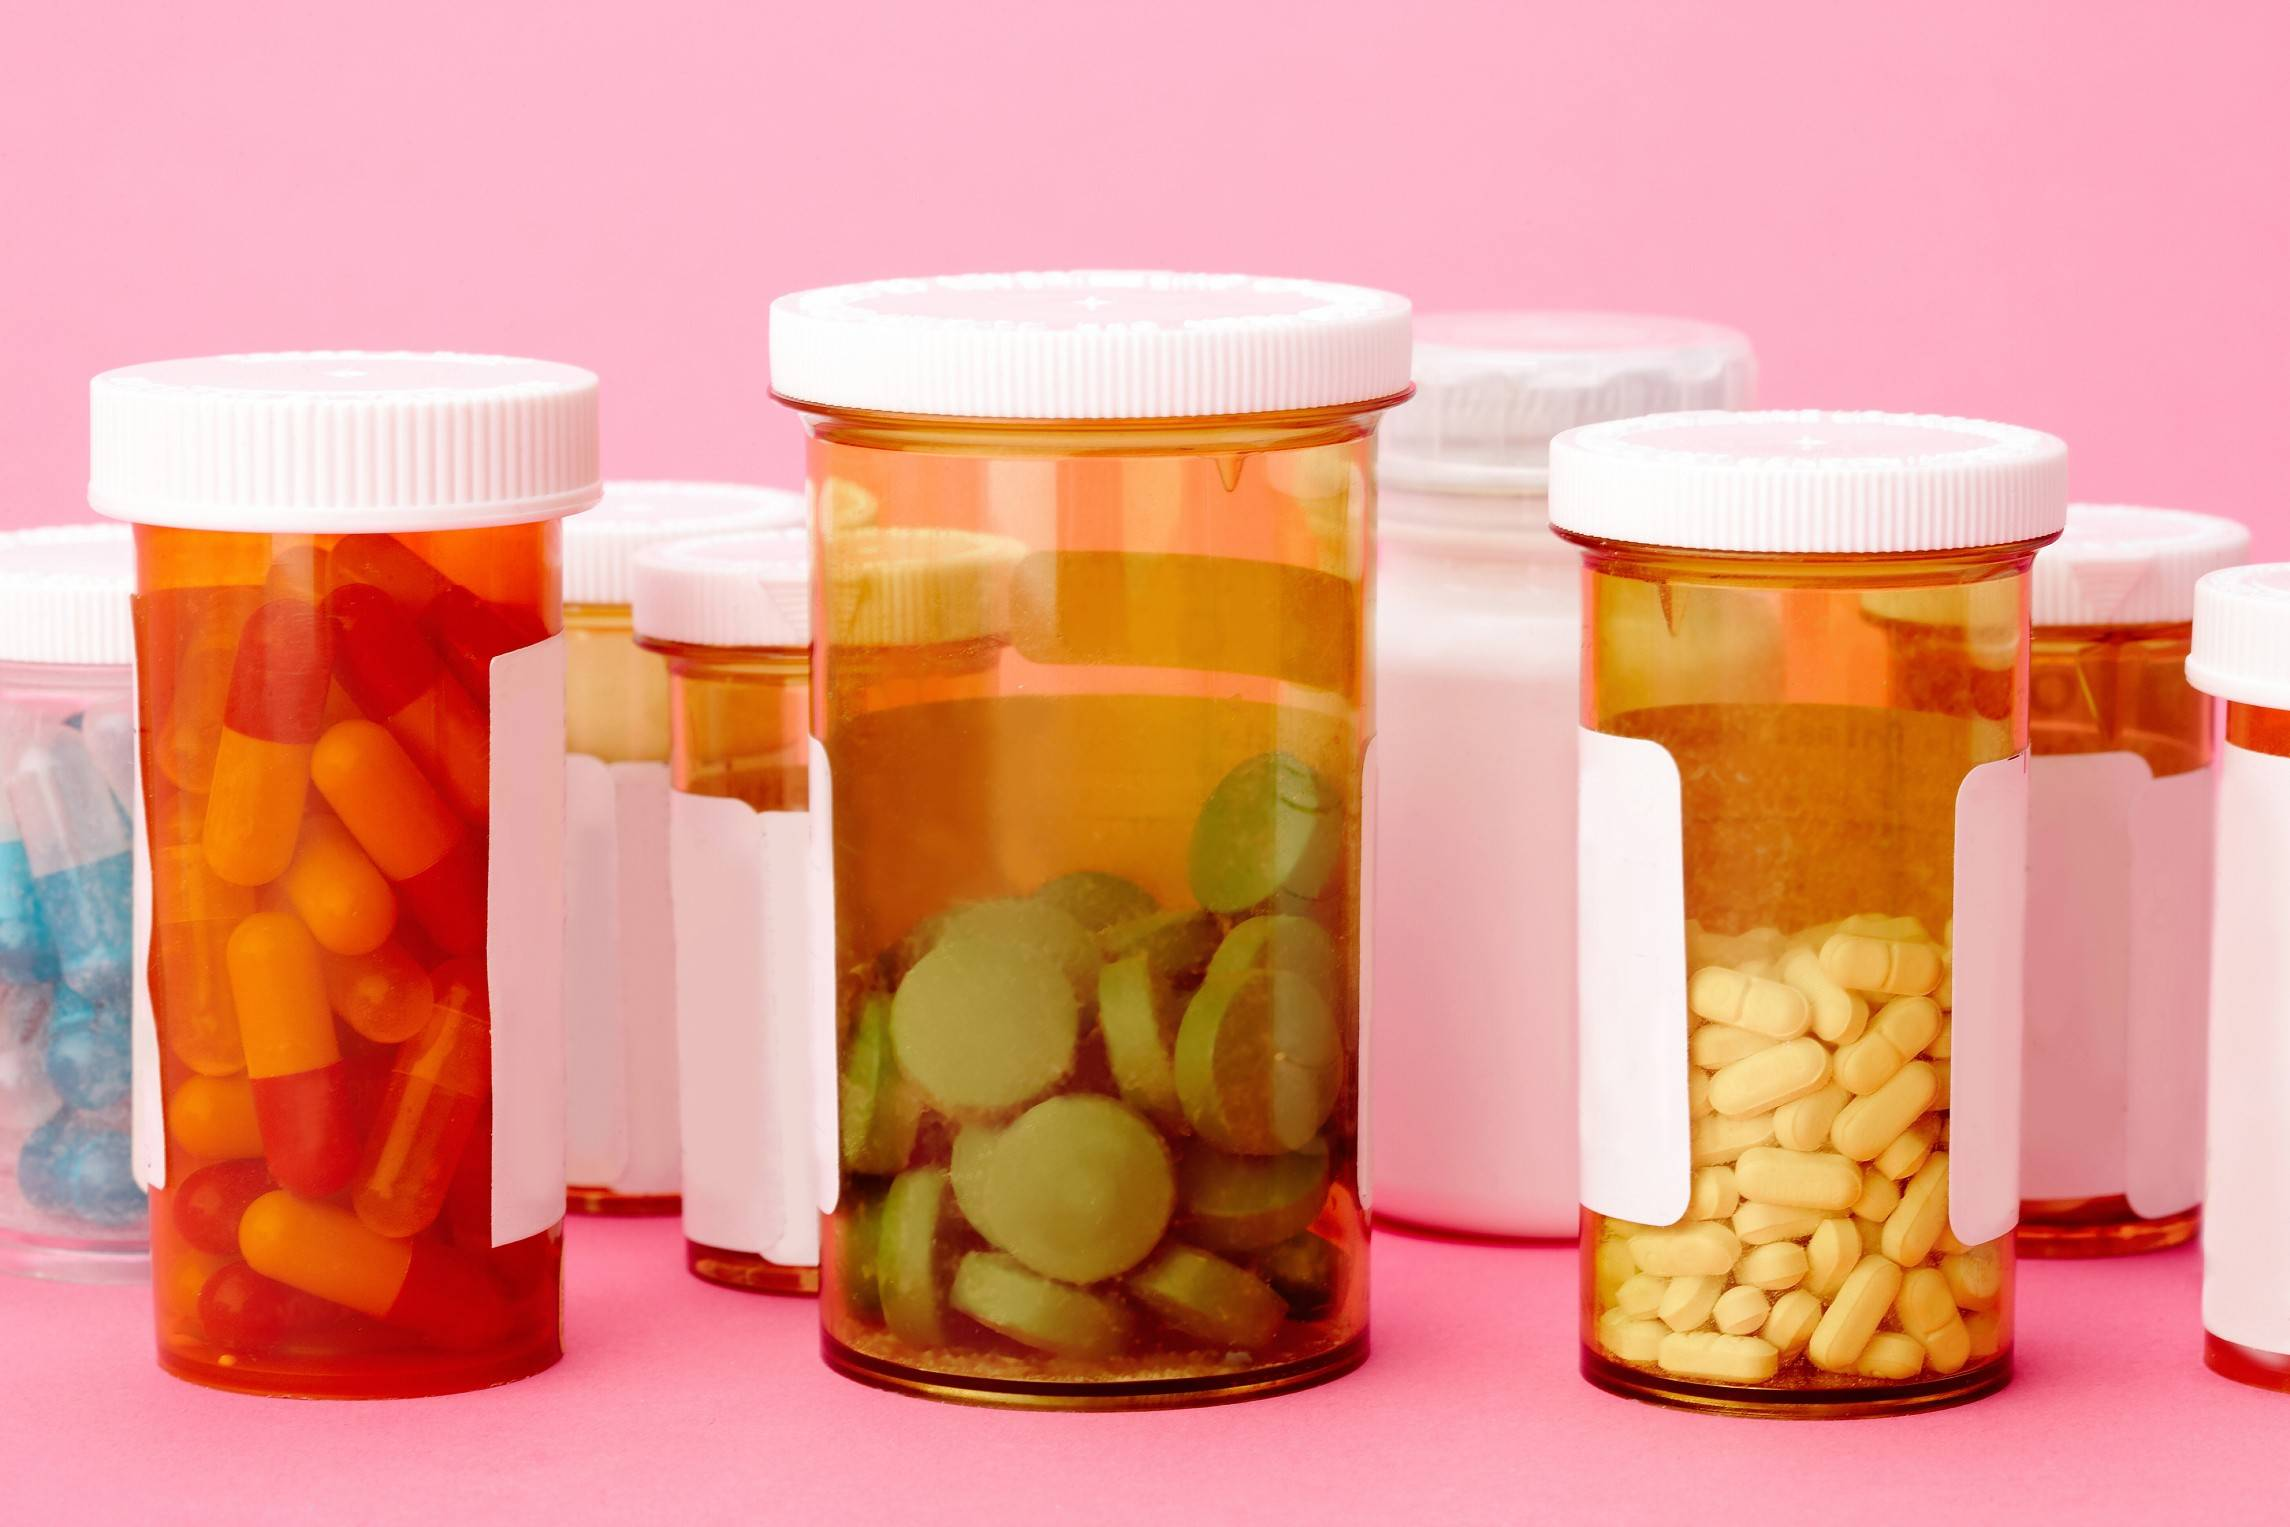 The Kane County Coroner's Office is accepting unwanted prescription drugs for disposal.